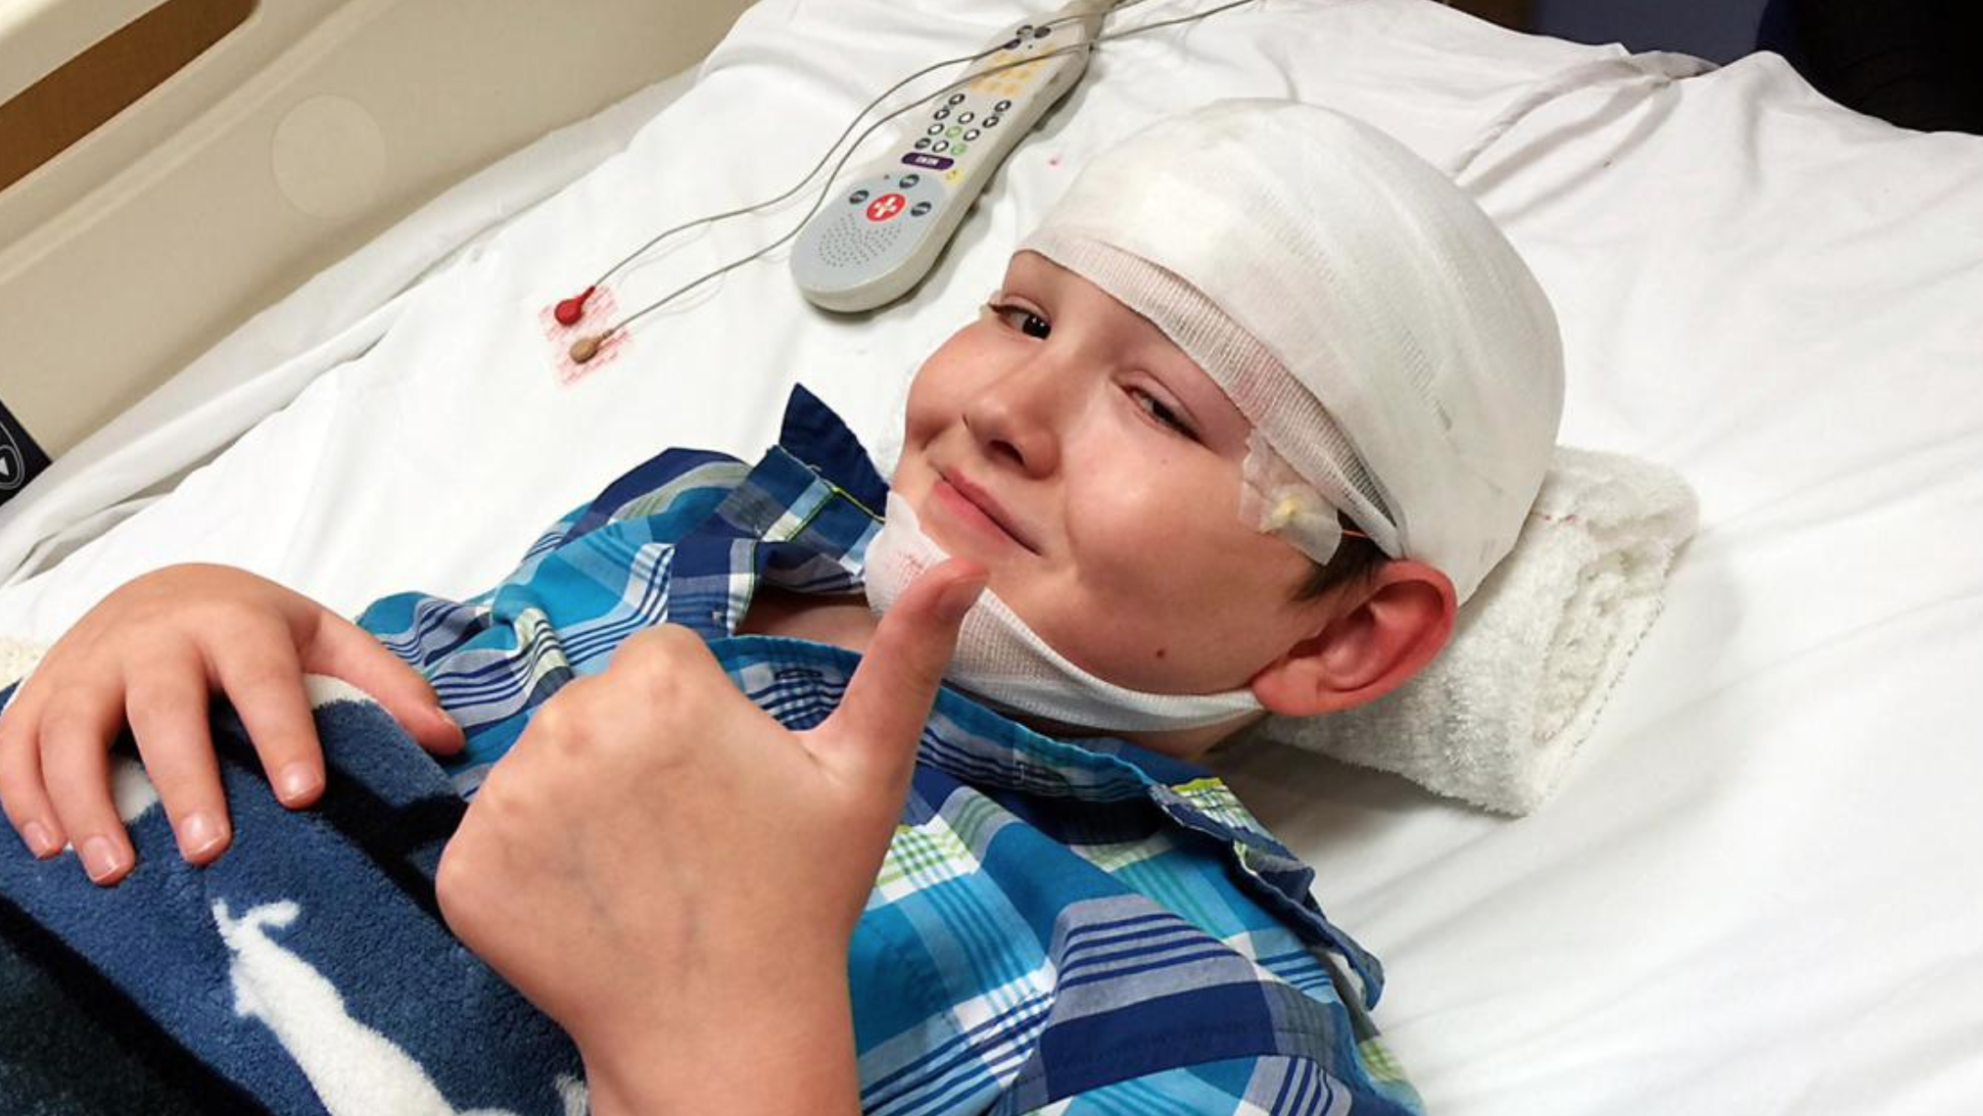 12-Year-Old's Rare Disease Is Turning Him to Stone: He'll Be 'Entombed Within Himself,' Says Mom